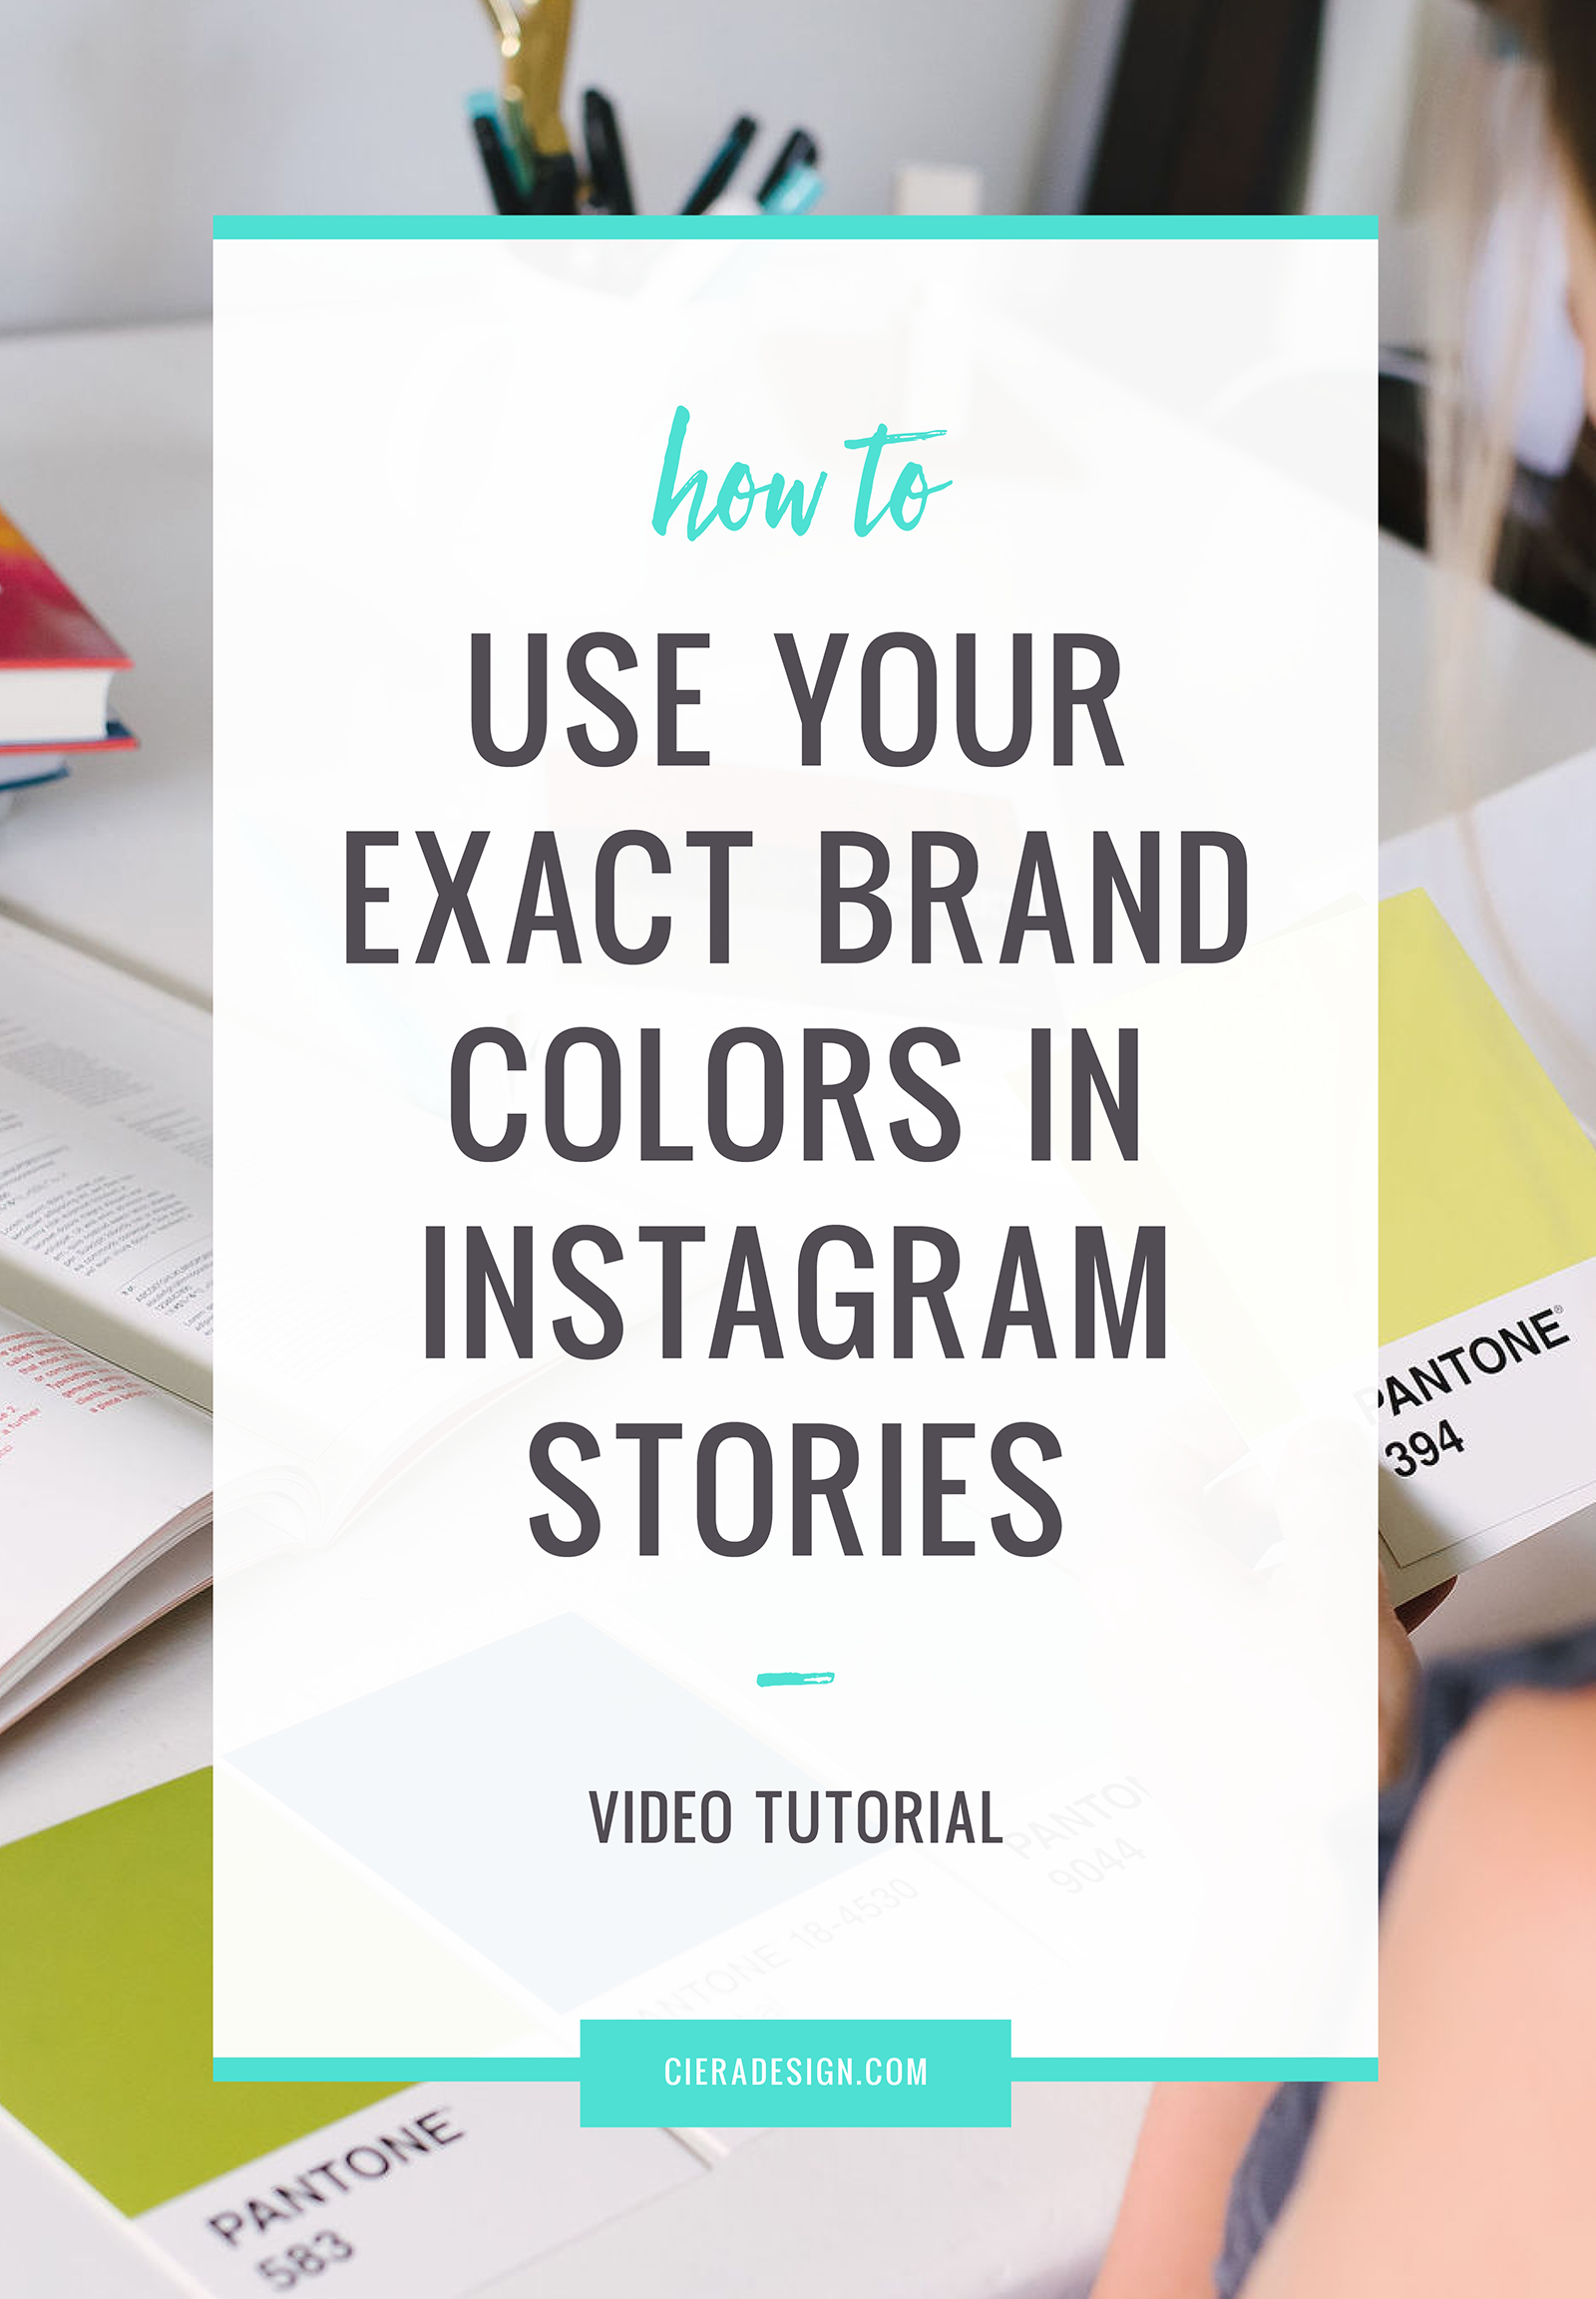 How and why to use your brand colors in Instagram stories. For starters... Research finds that color increases brand recognition by 80%.